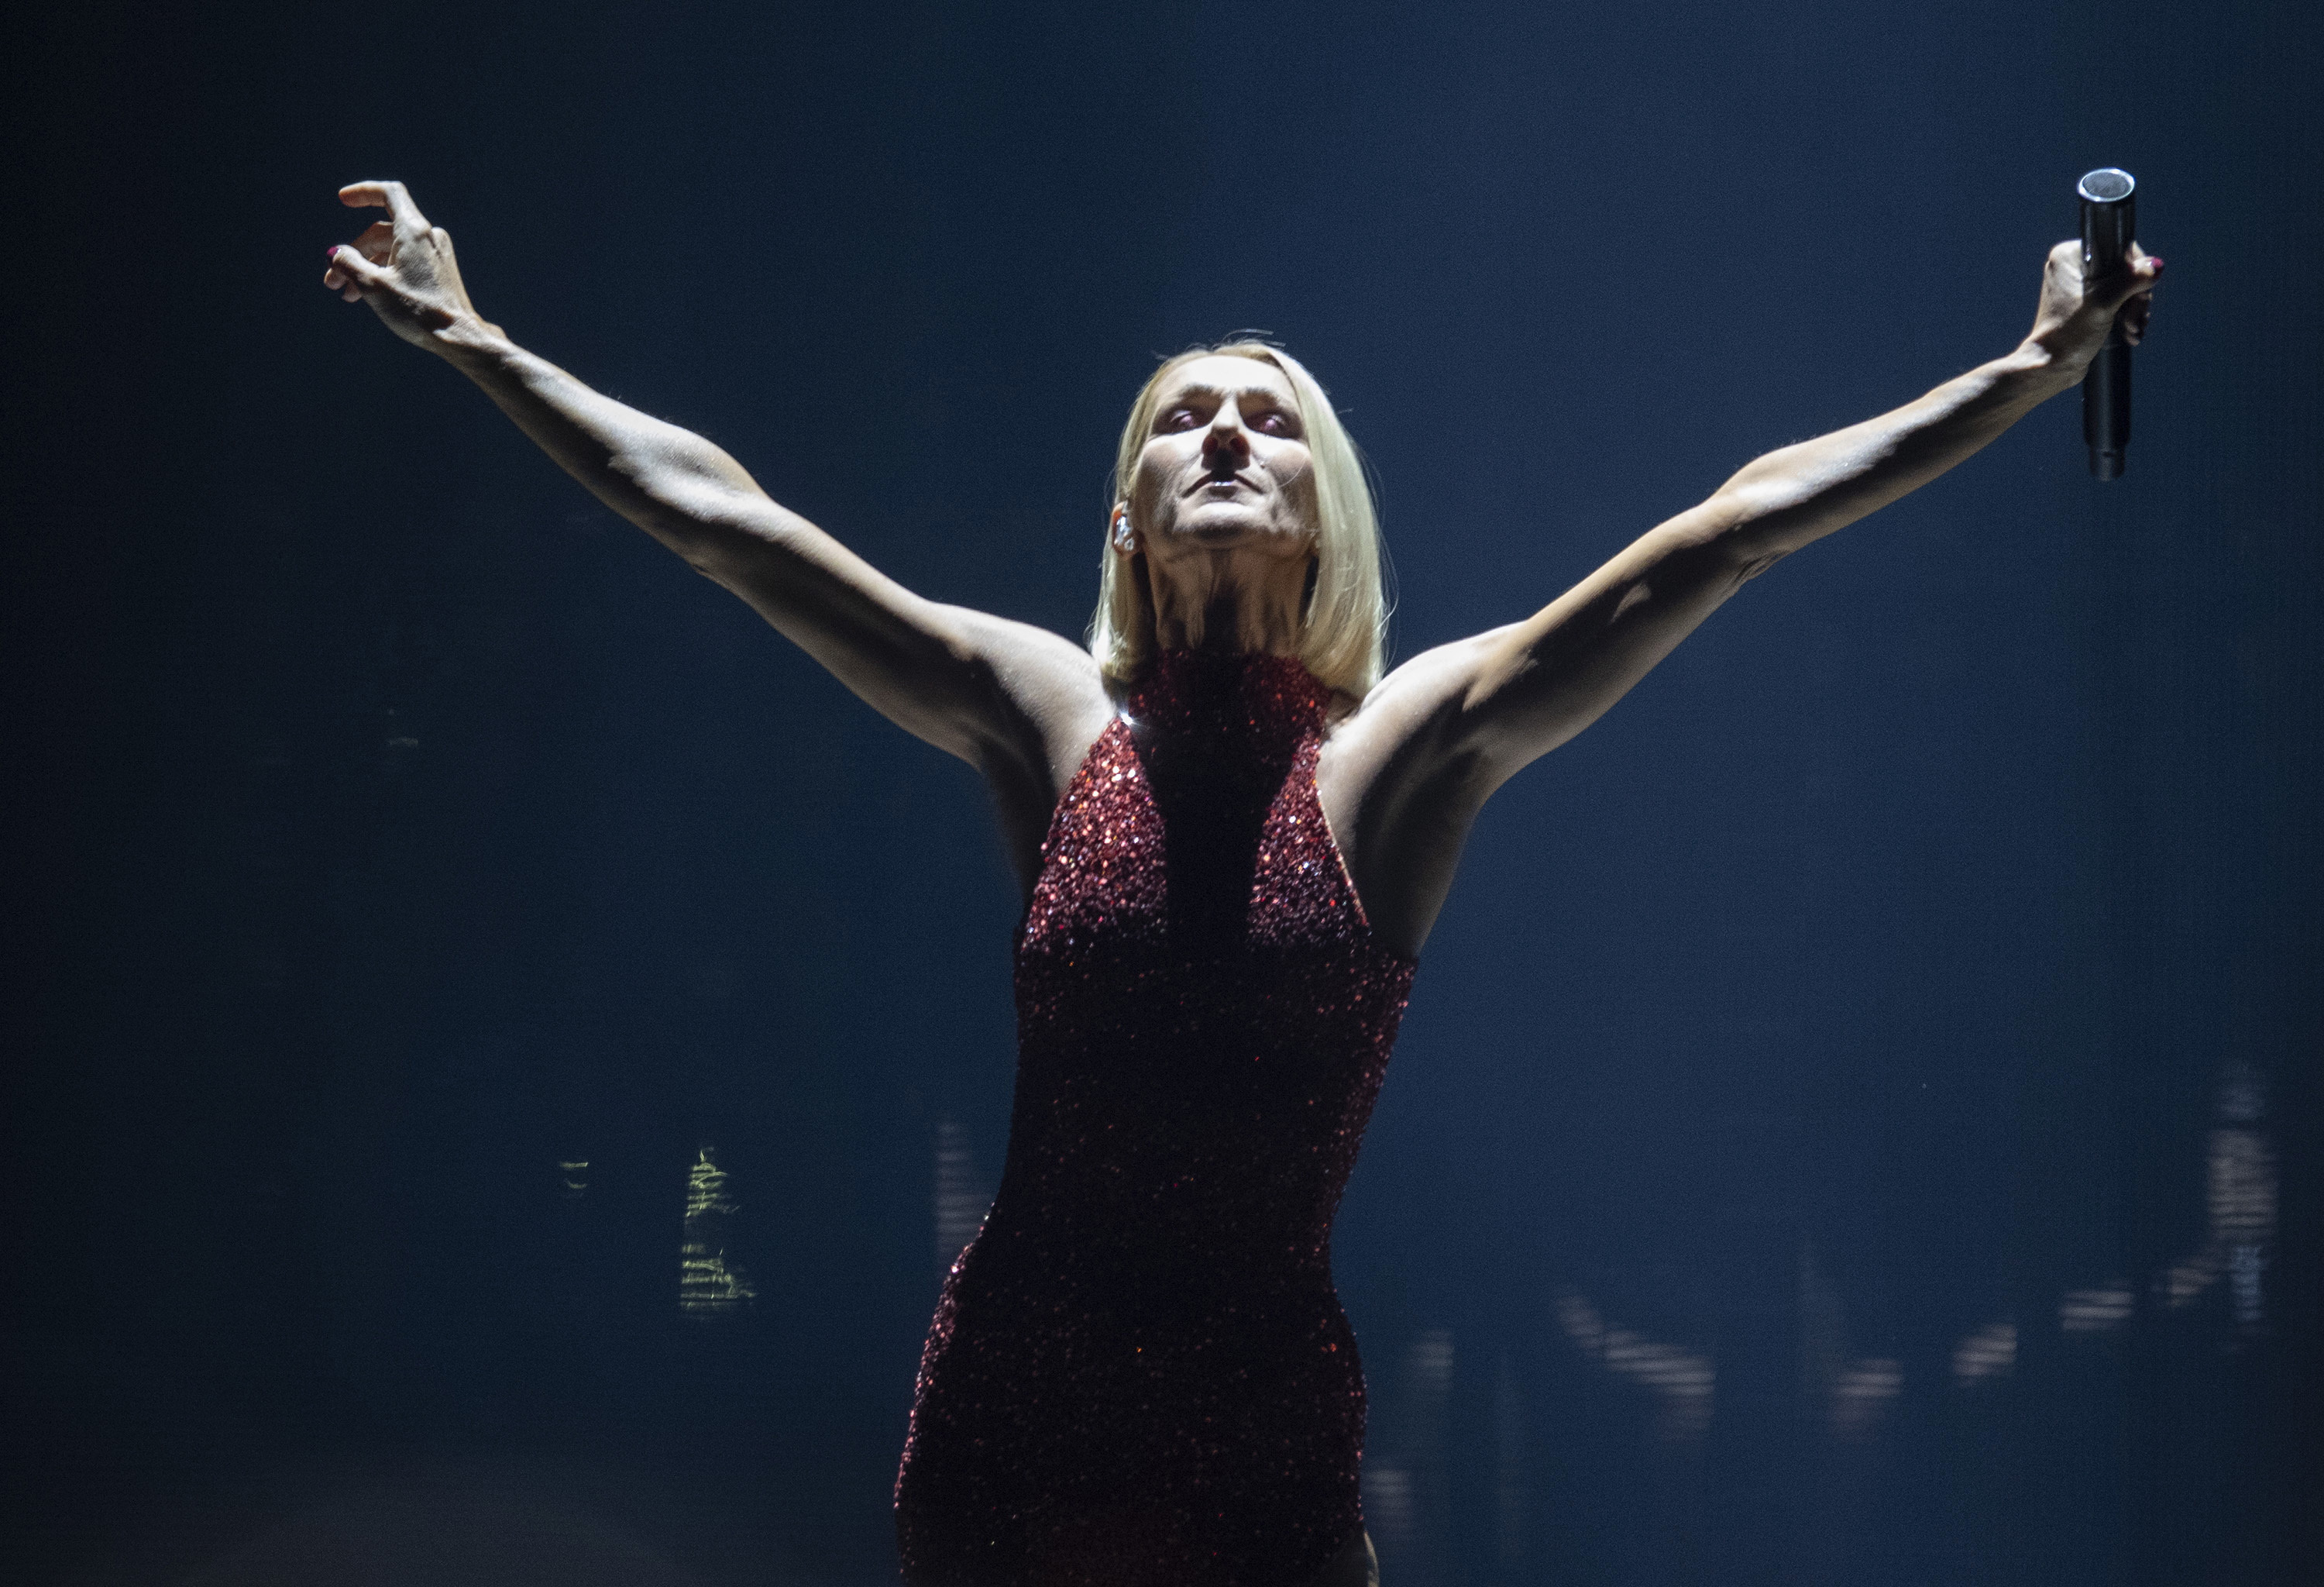 Celine Dion performs during her Courage world tour in Quebec City, Montreal, Canada on Sept. 18, 2019.